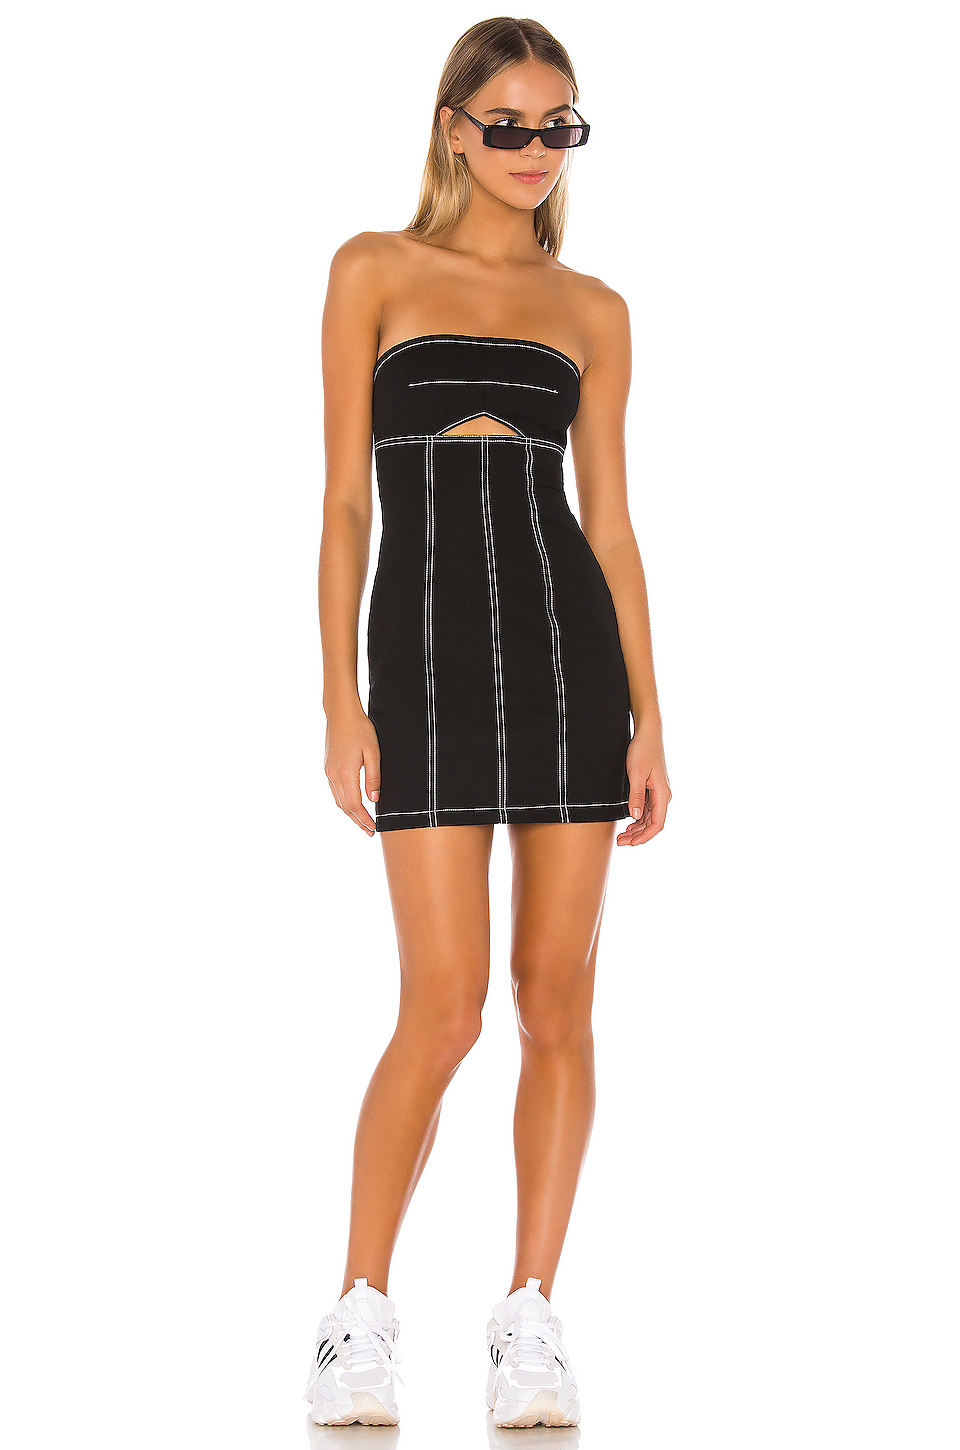 h:ours Lex Mini Dress